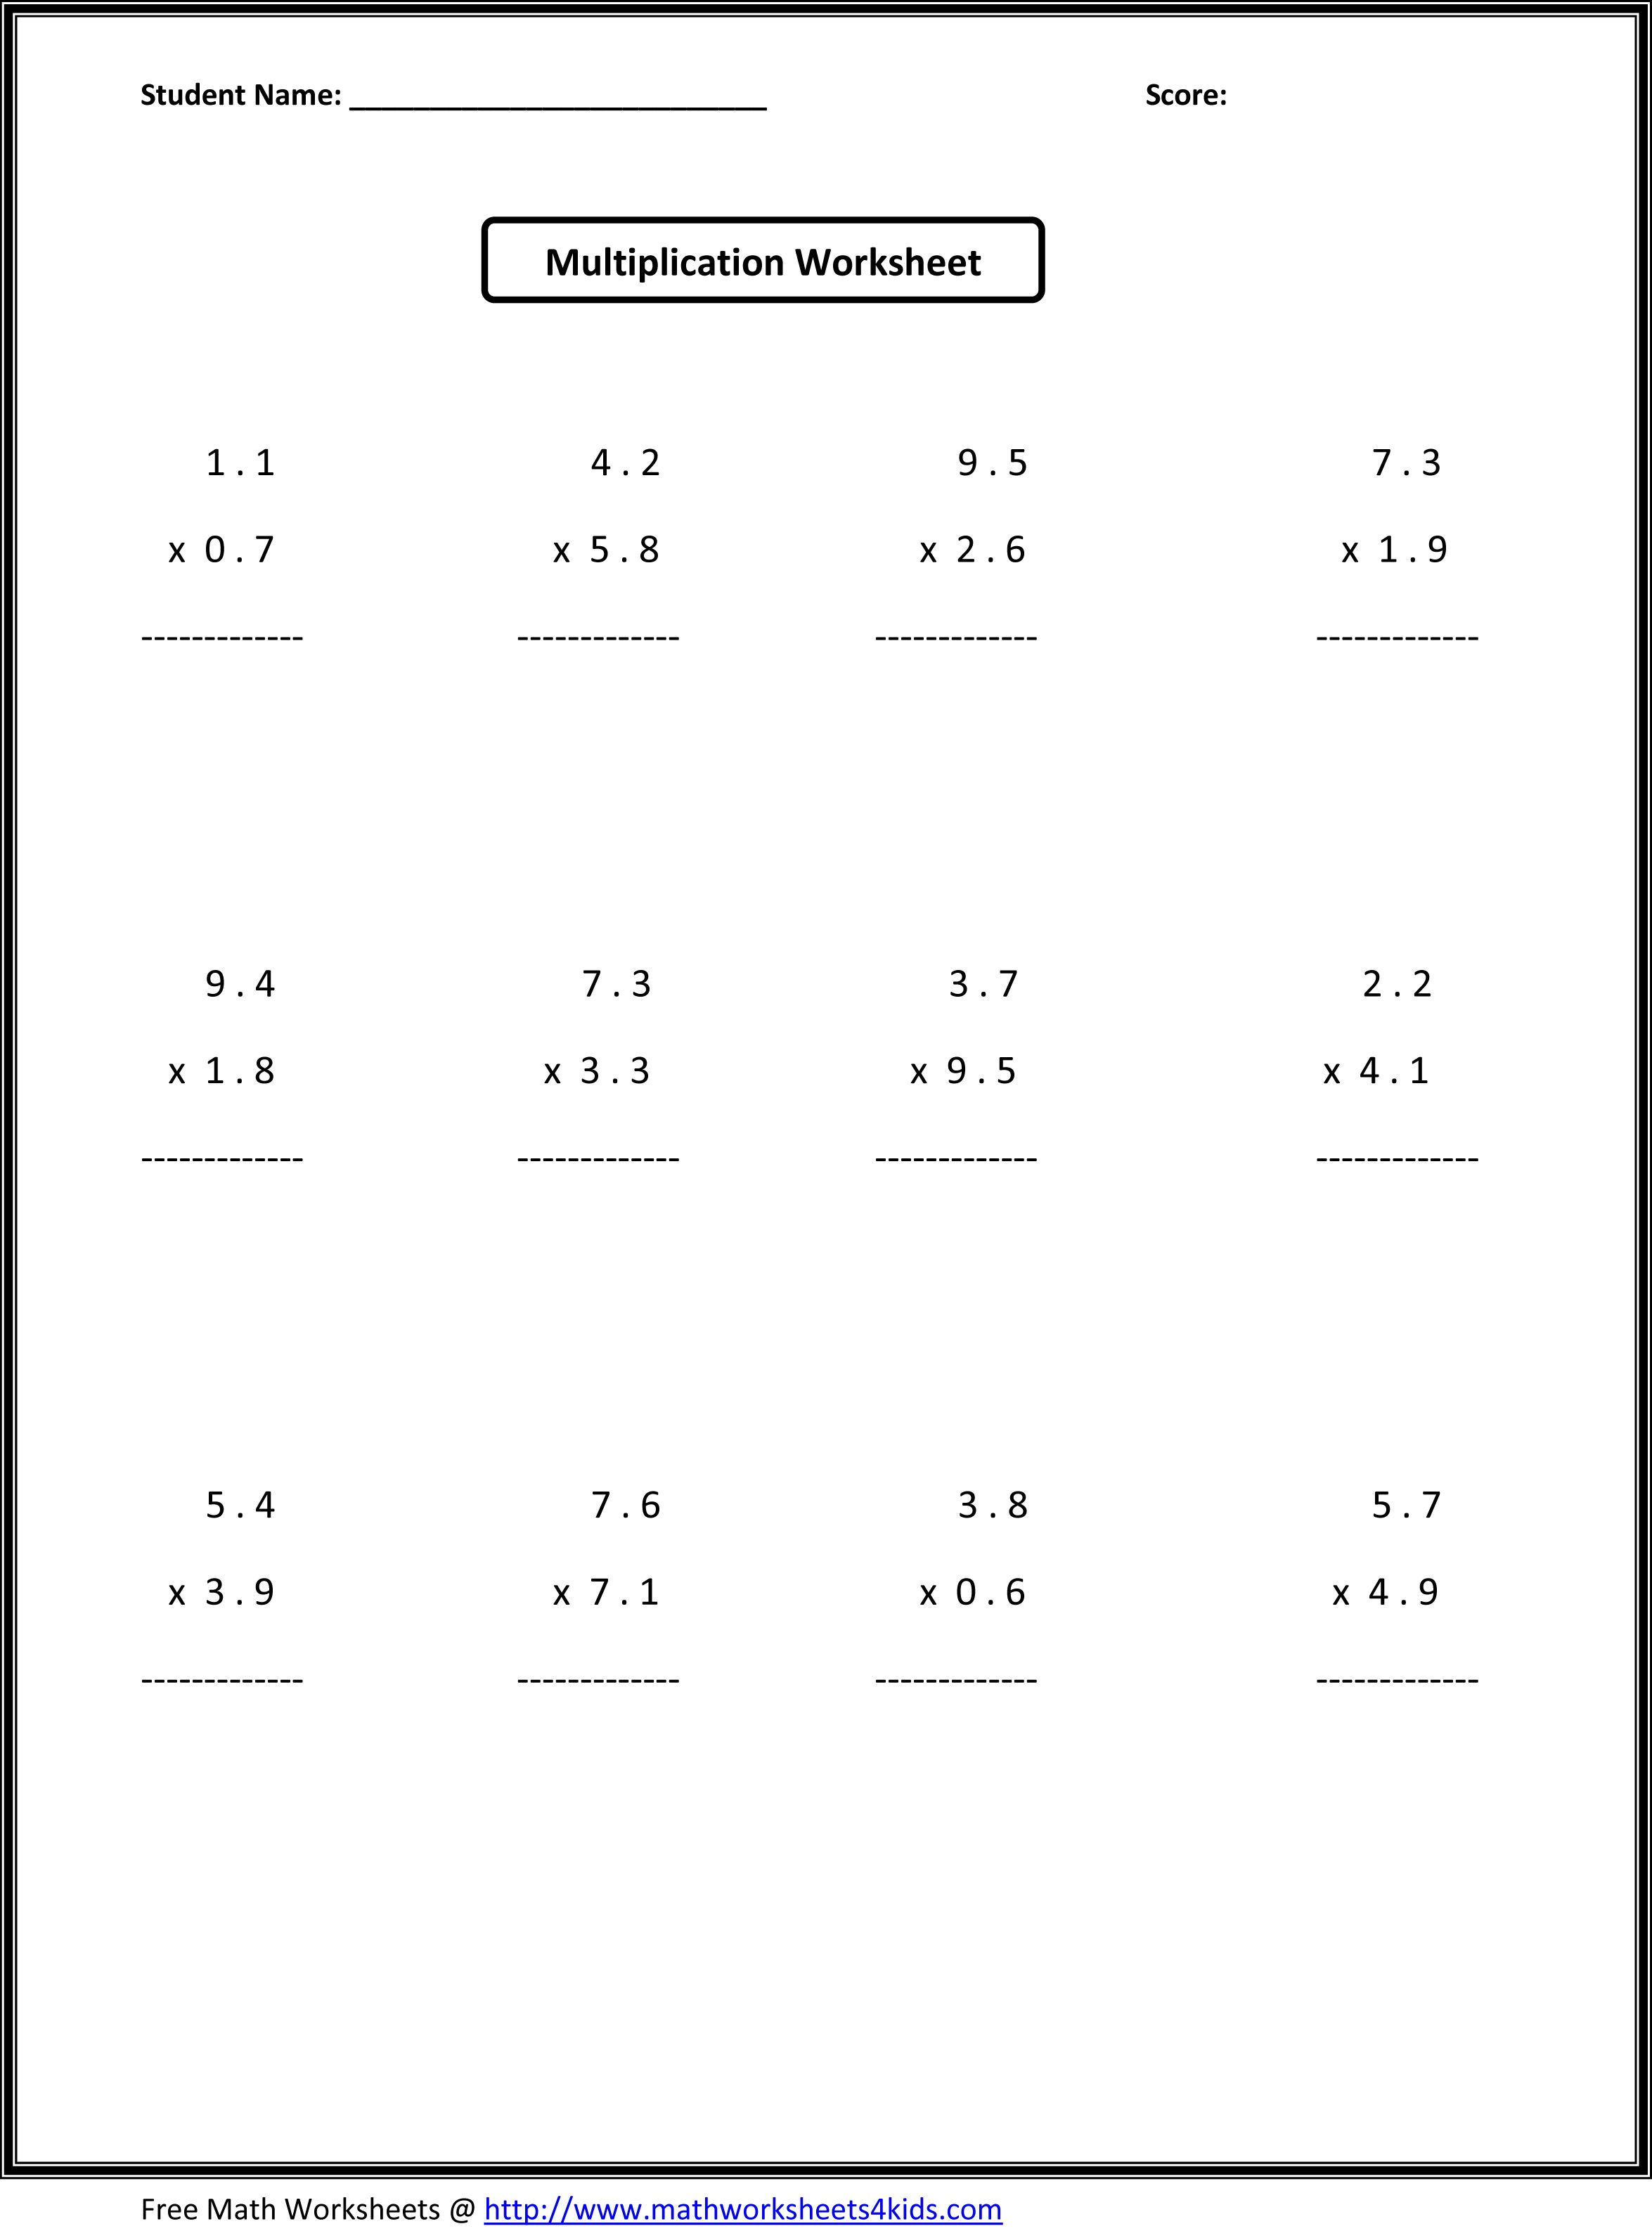 Printables Math Worksheet For 7th Grade 7th grade algebra worksheets math places value absolute based on basic math